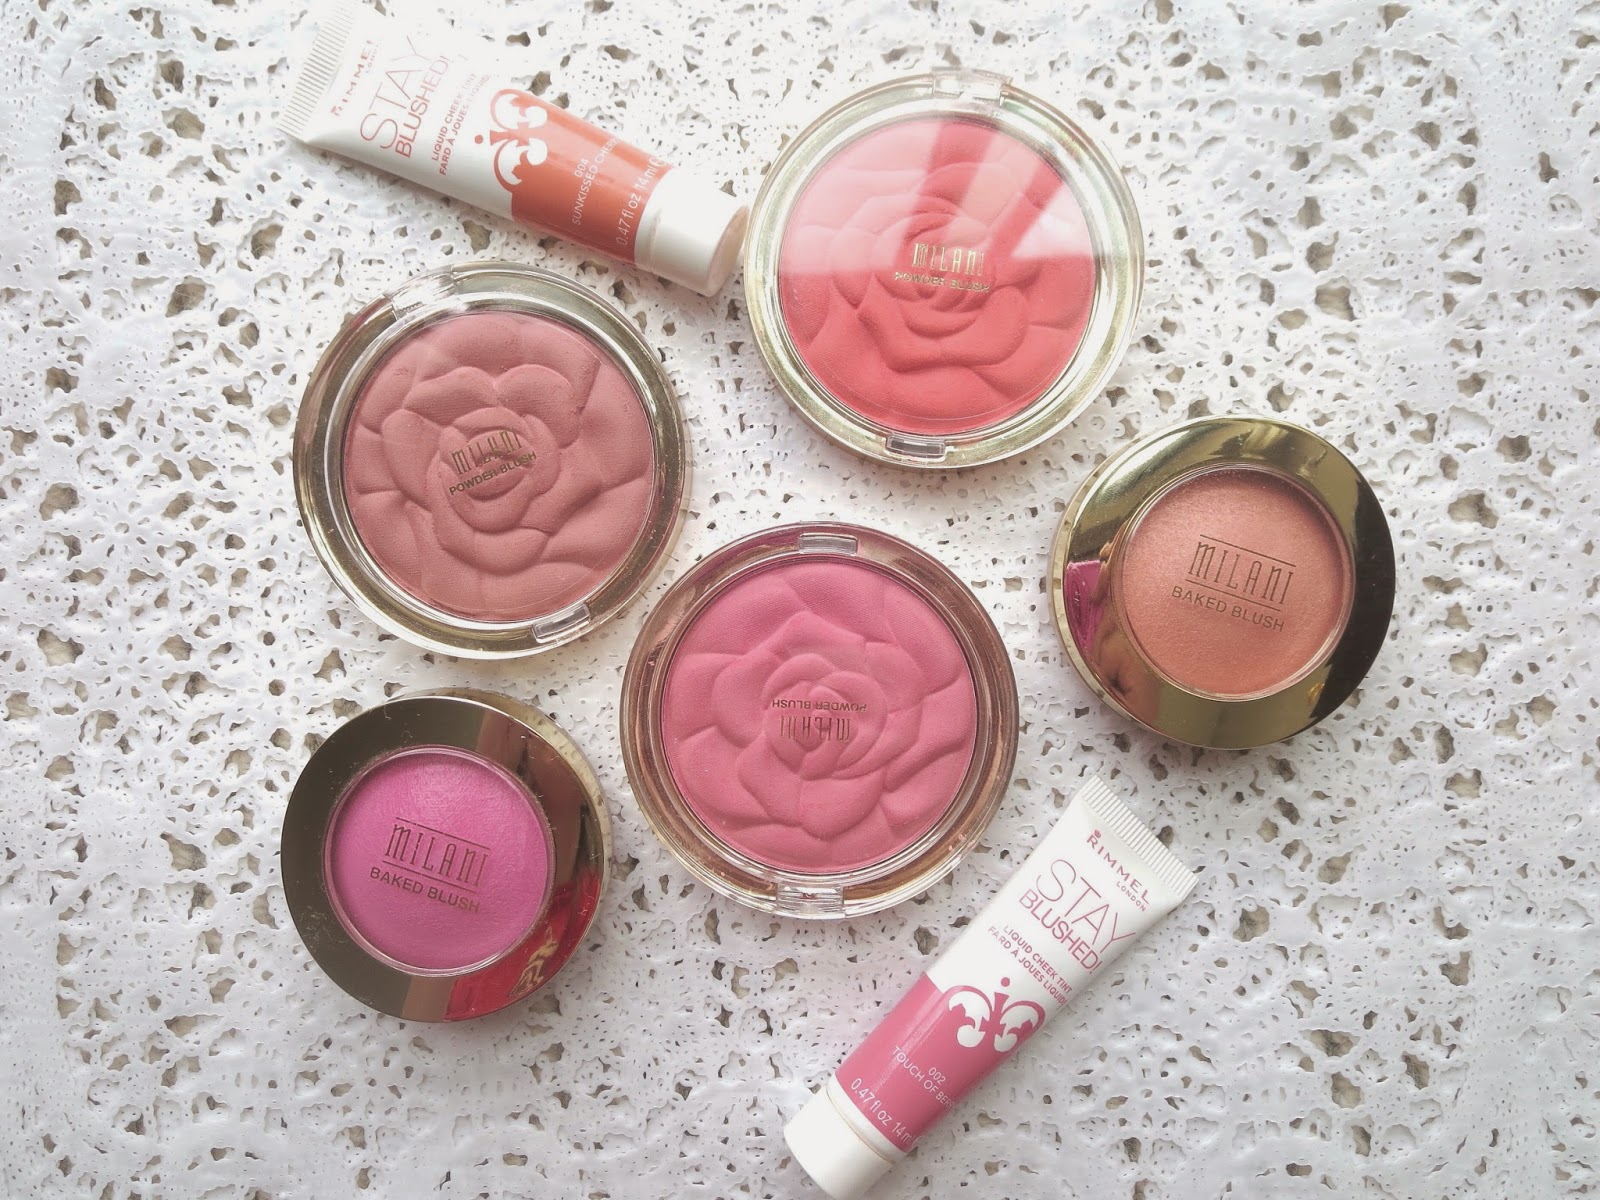 a picture of the best drugstore blushes ; Milani Rose Powder Blush, Milani Baked Blush, Rimmel Stay Blushed